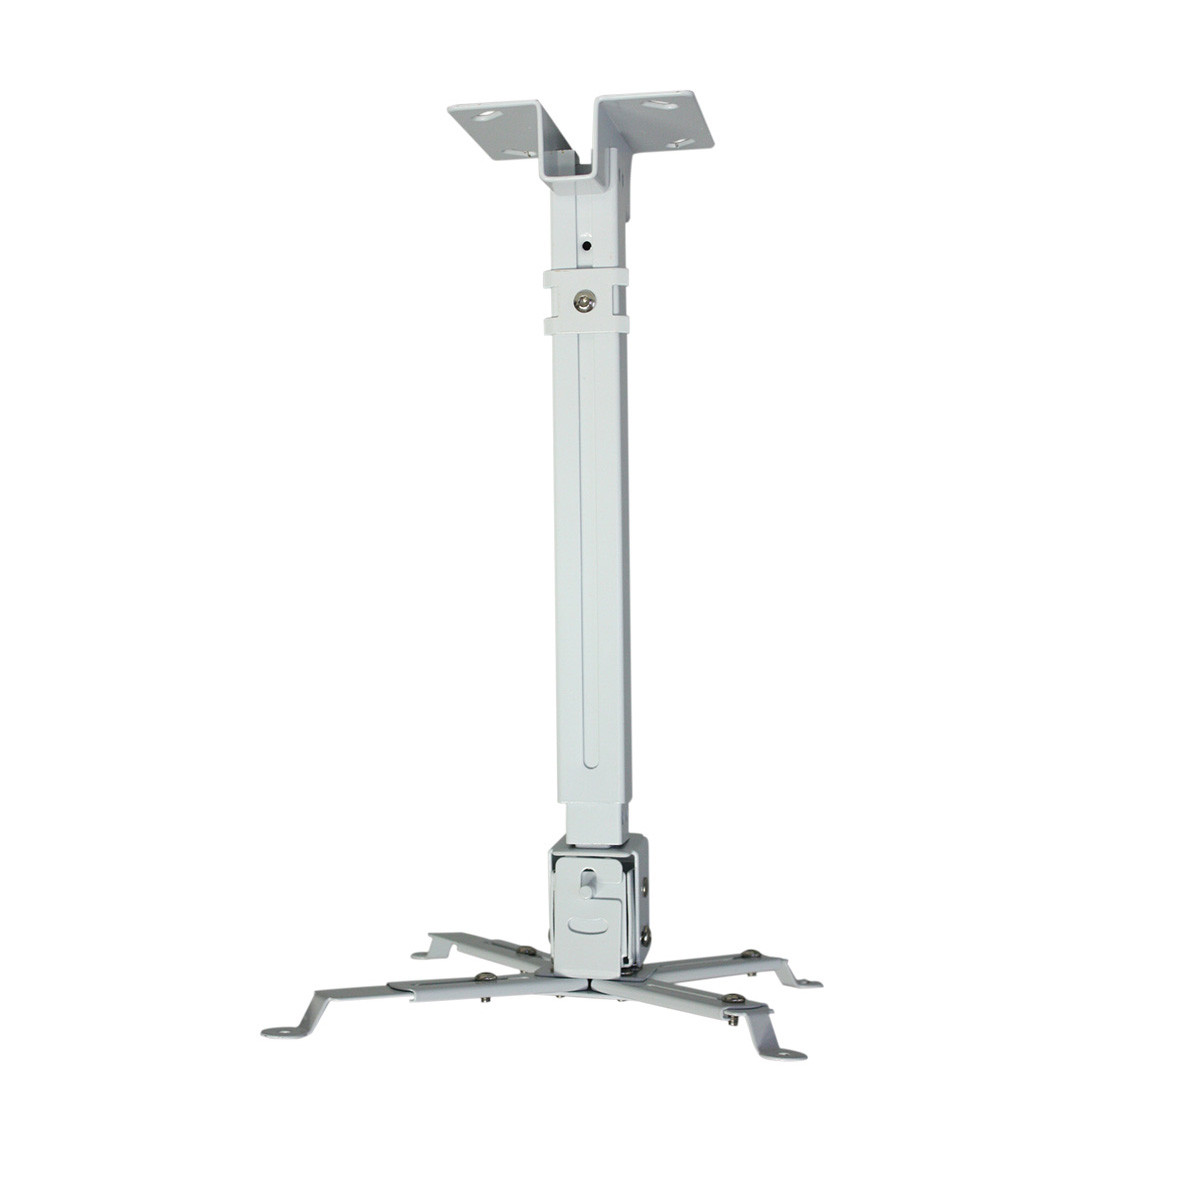 Universal Projector Ceiling Mount Pm4365f Wh Boost